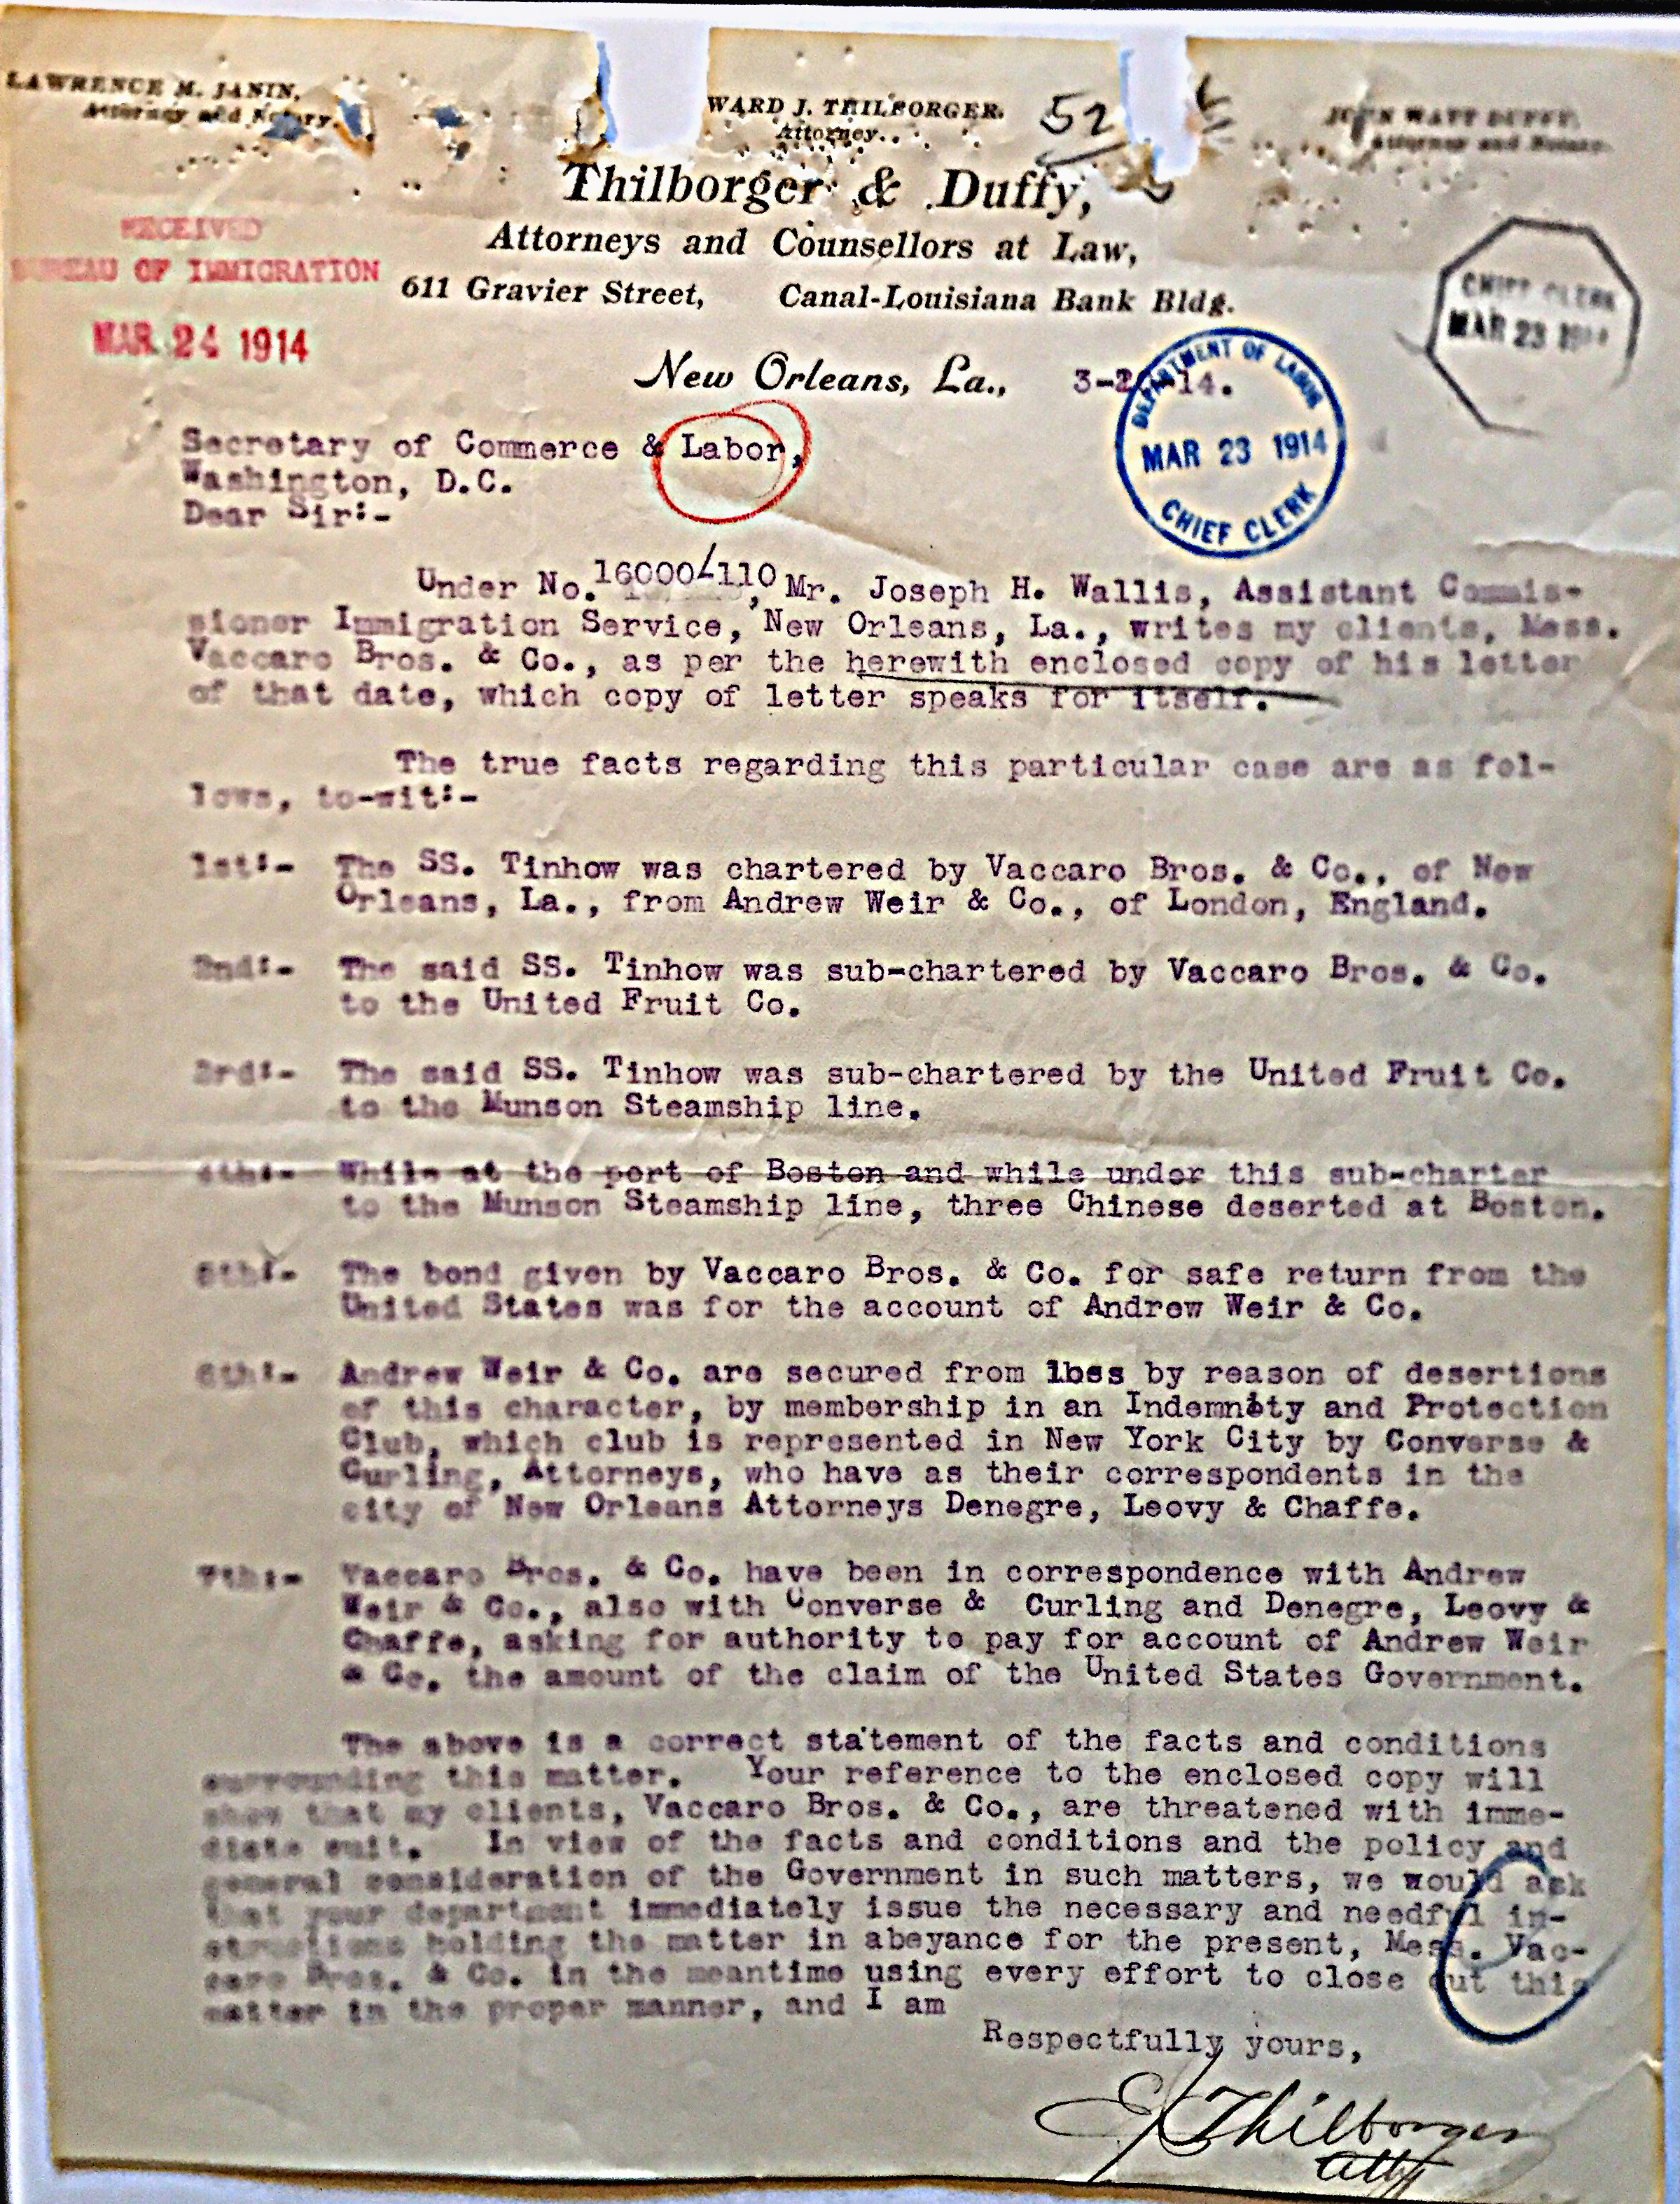 Letter from Ward Thilborger to Secretary of Commerce and Labor, March 24, 1914.